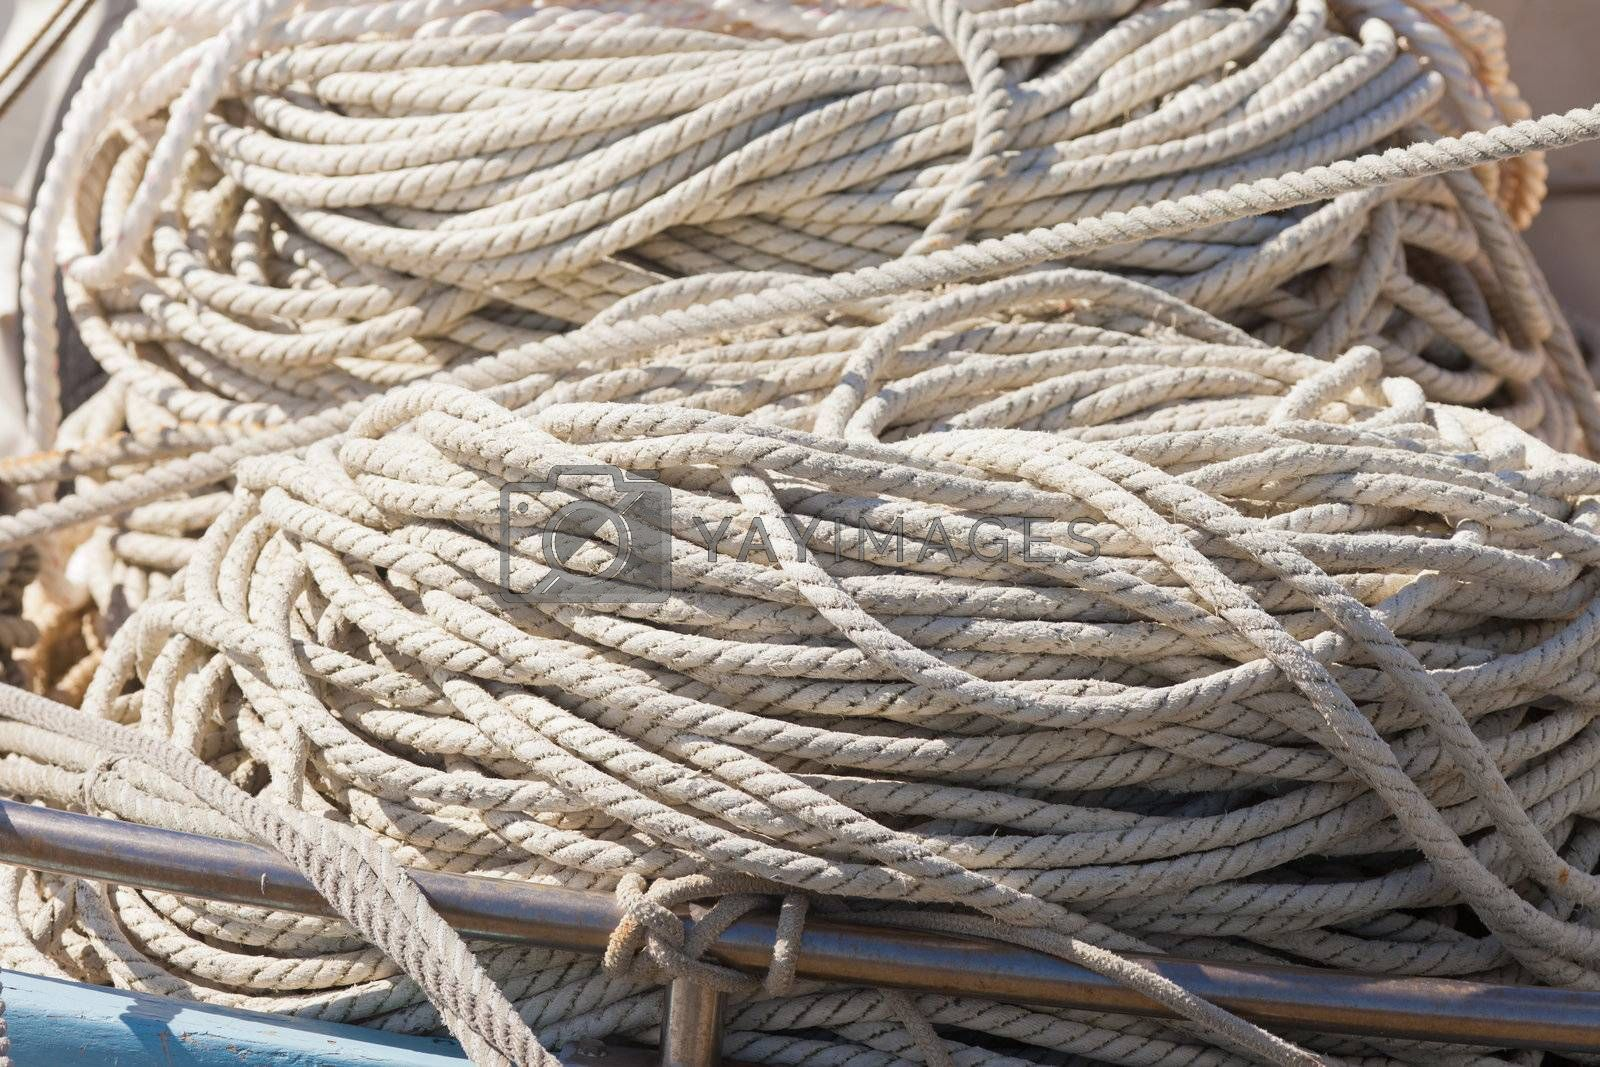 Pile Of Worn Hemp Rope Background Texture Pattern Royalty Free Stock Image Stock Photos Royalty Free Images Vectors Footage Yayimages